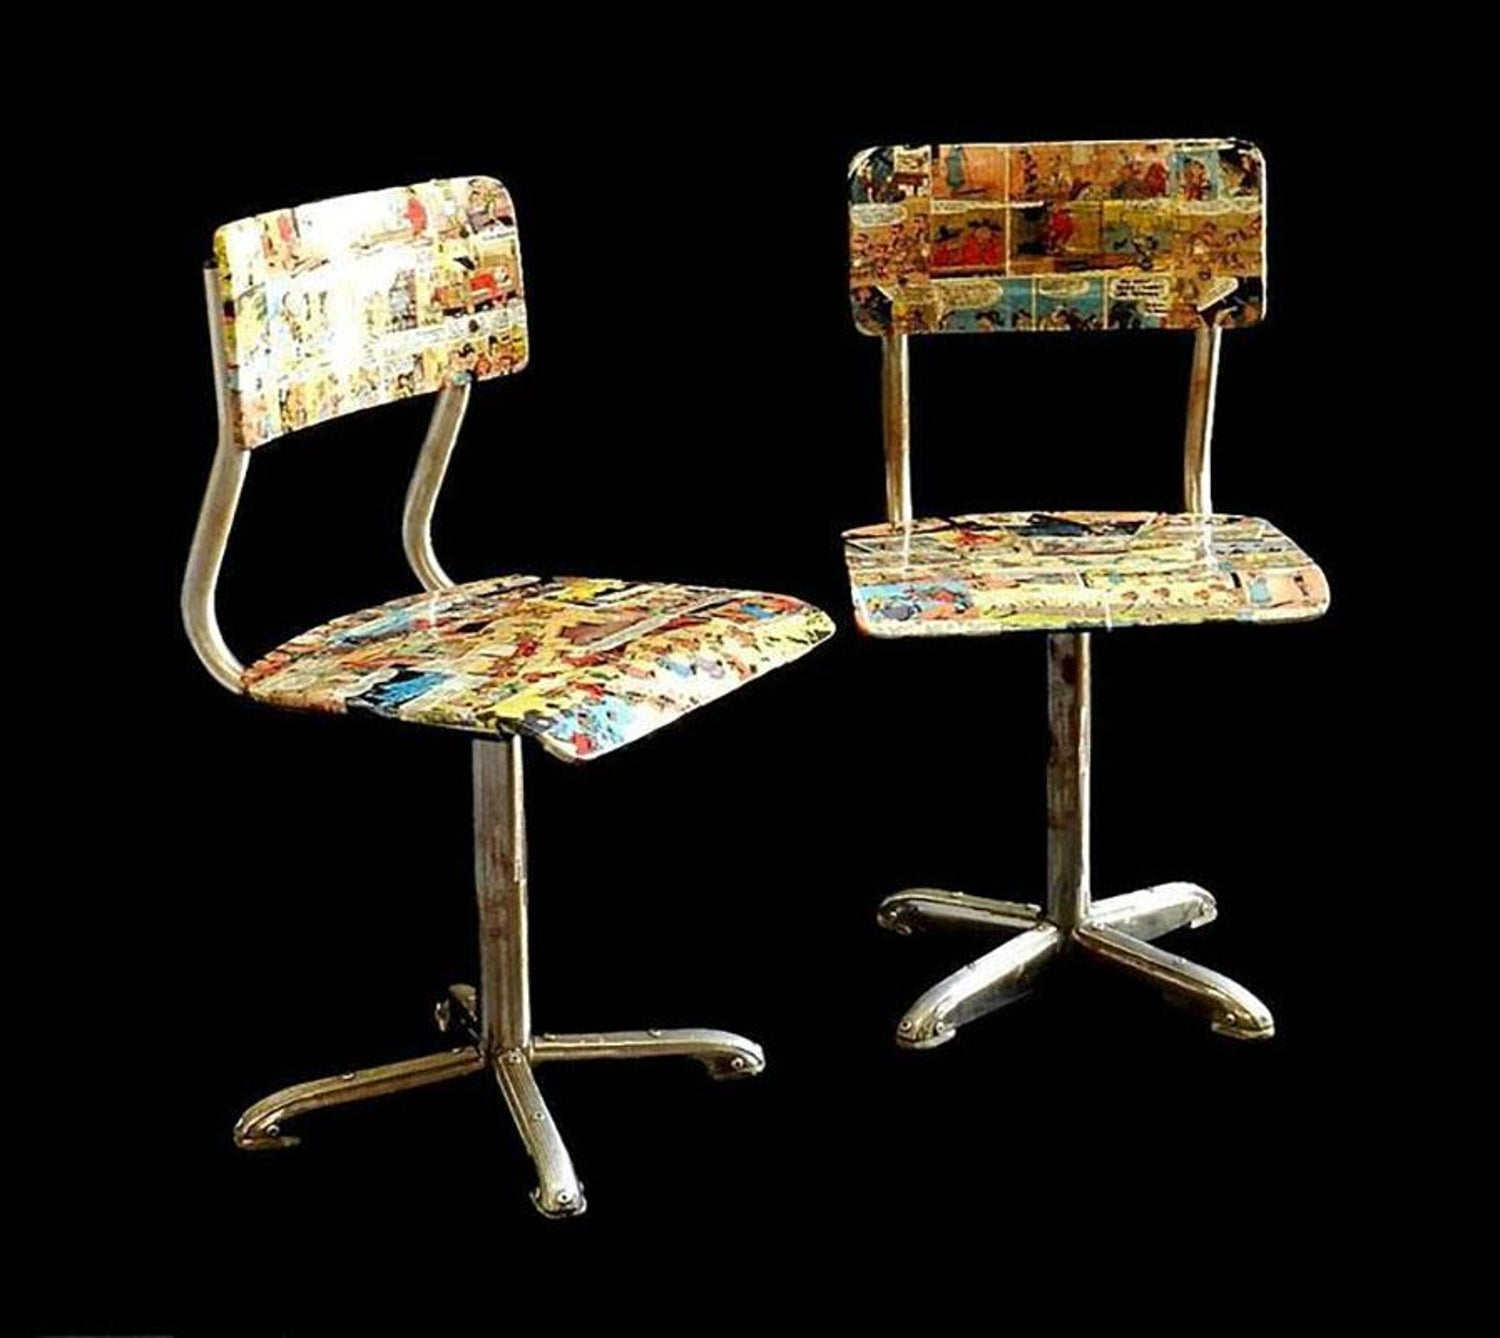 Admirable Midcentury Bentwood Childs Chair 1950S Comic Decoupage Lucky Luke Download Free Architecture Designs Scobabritishbridgeorg